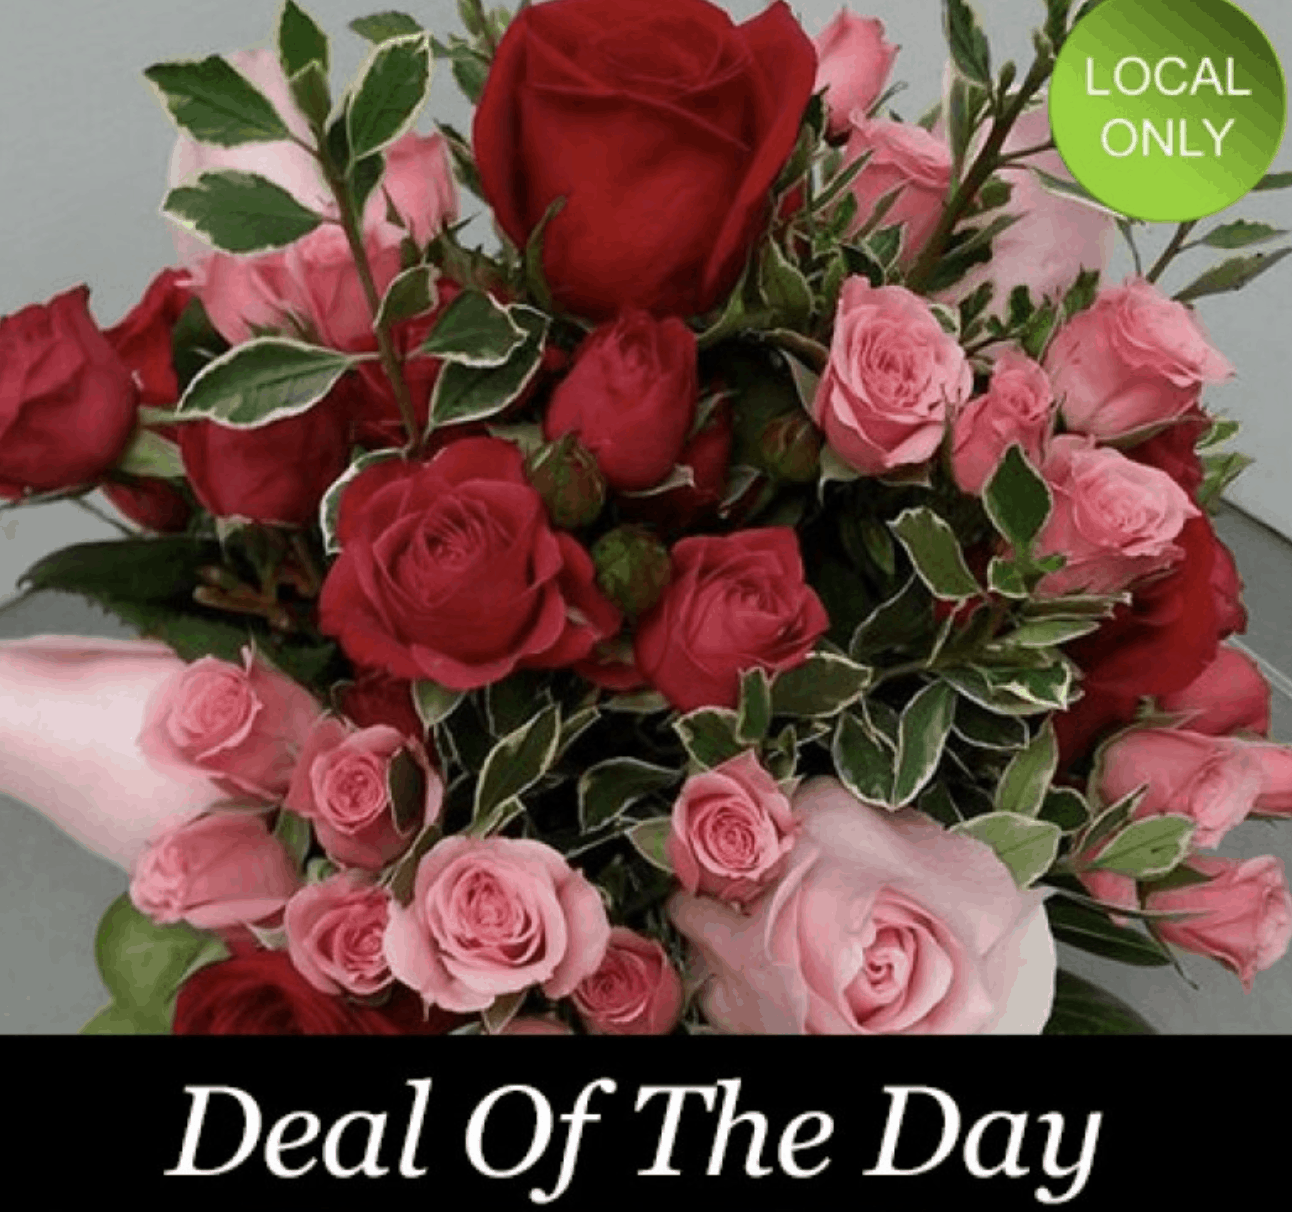 Take Advantage of Our Local Red Rose Special This Summer!